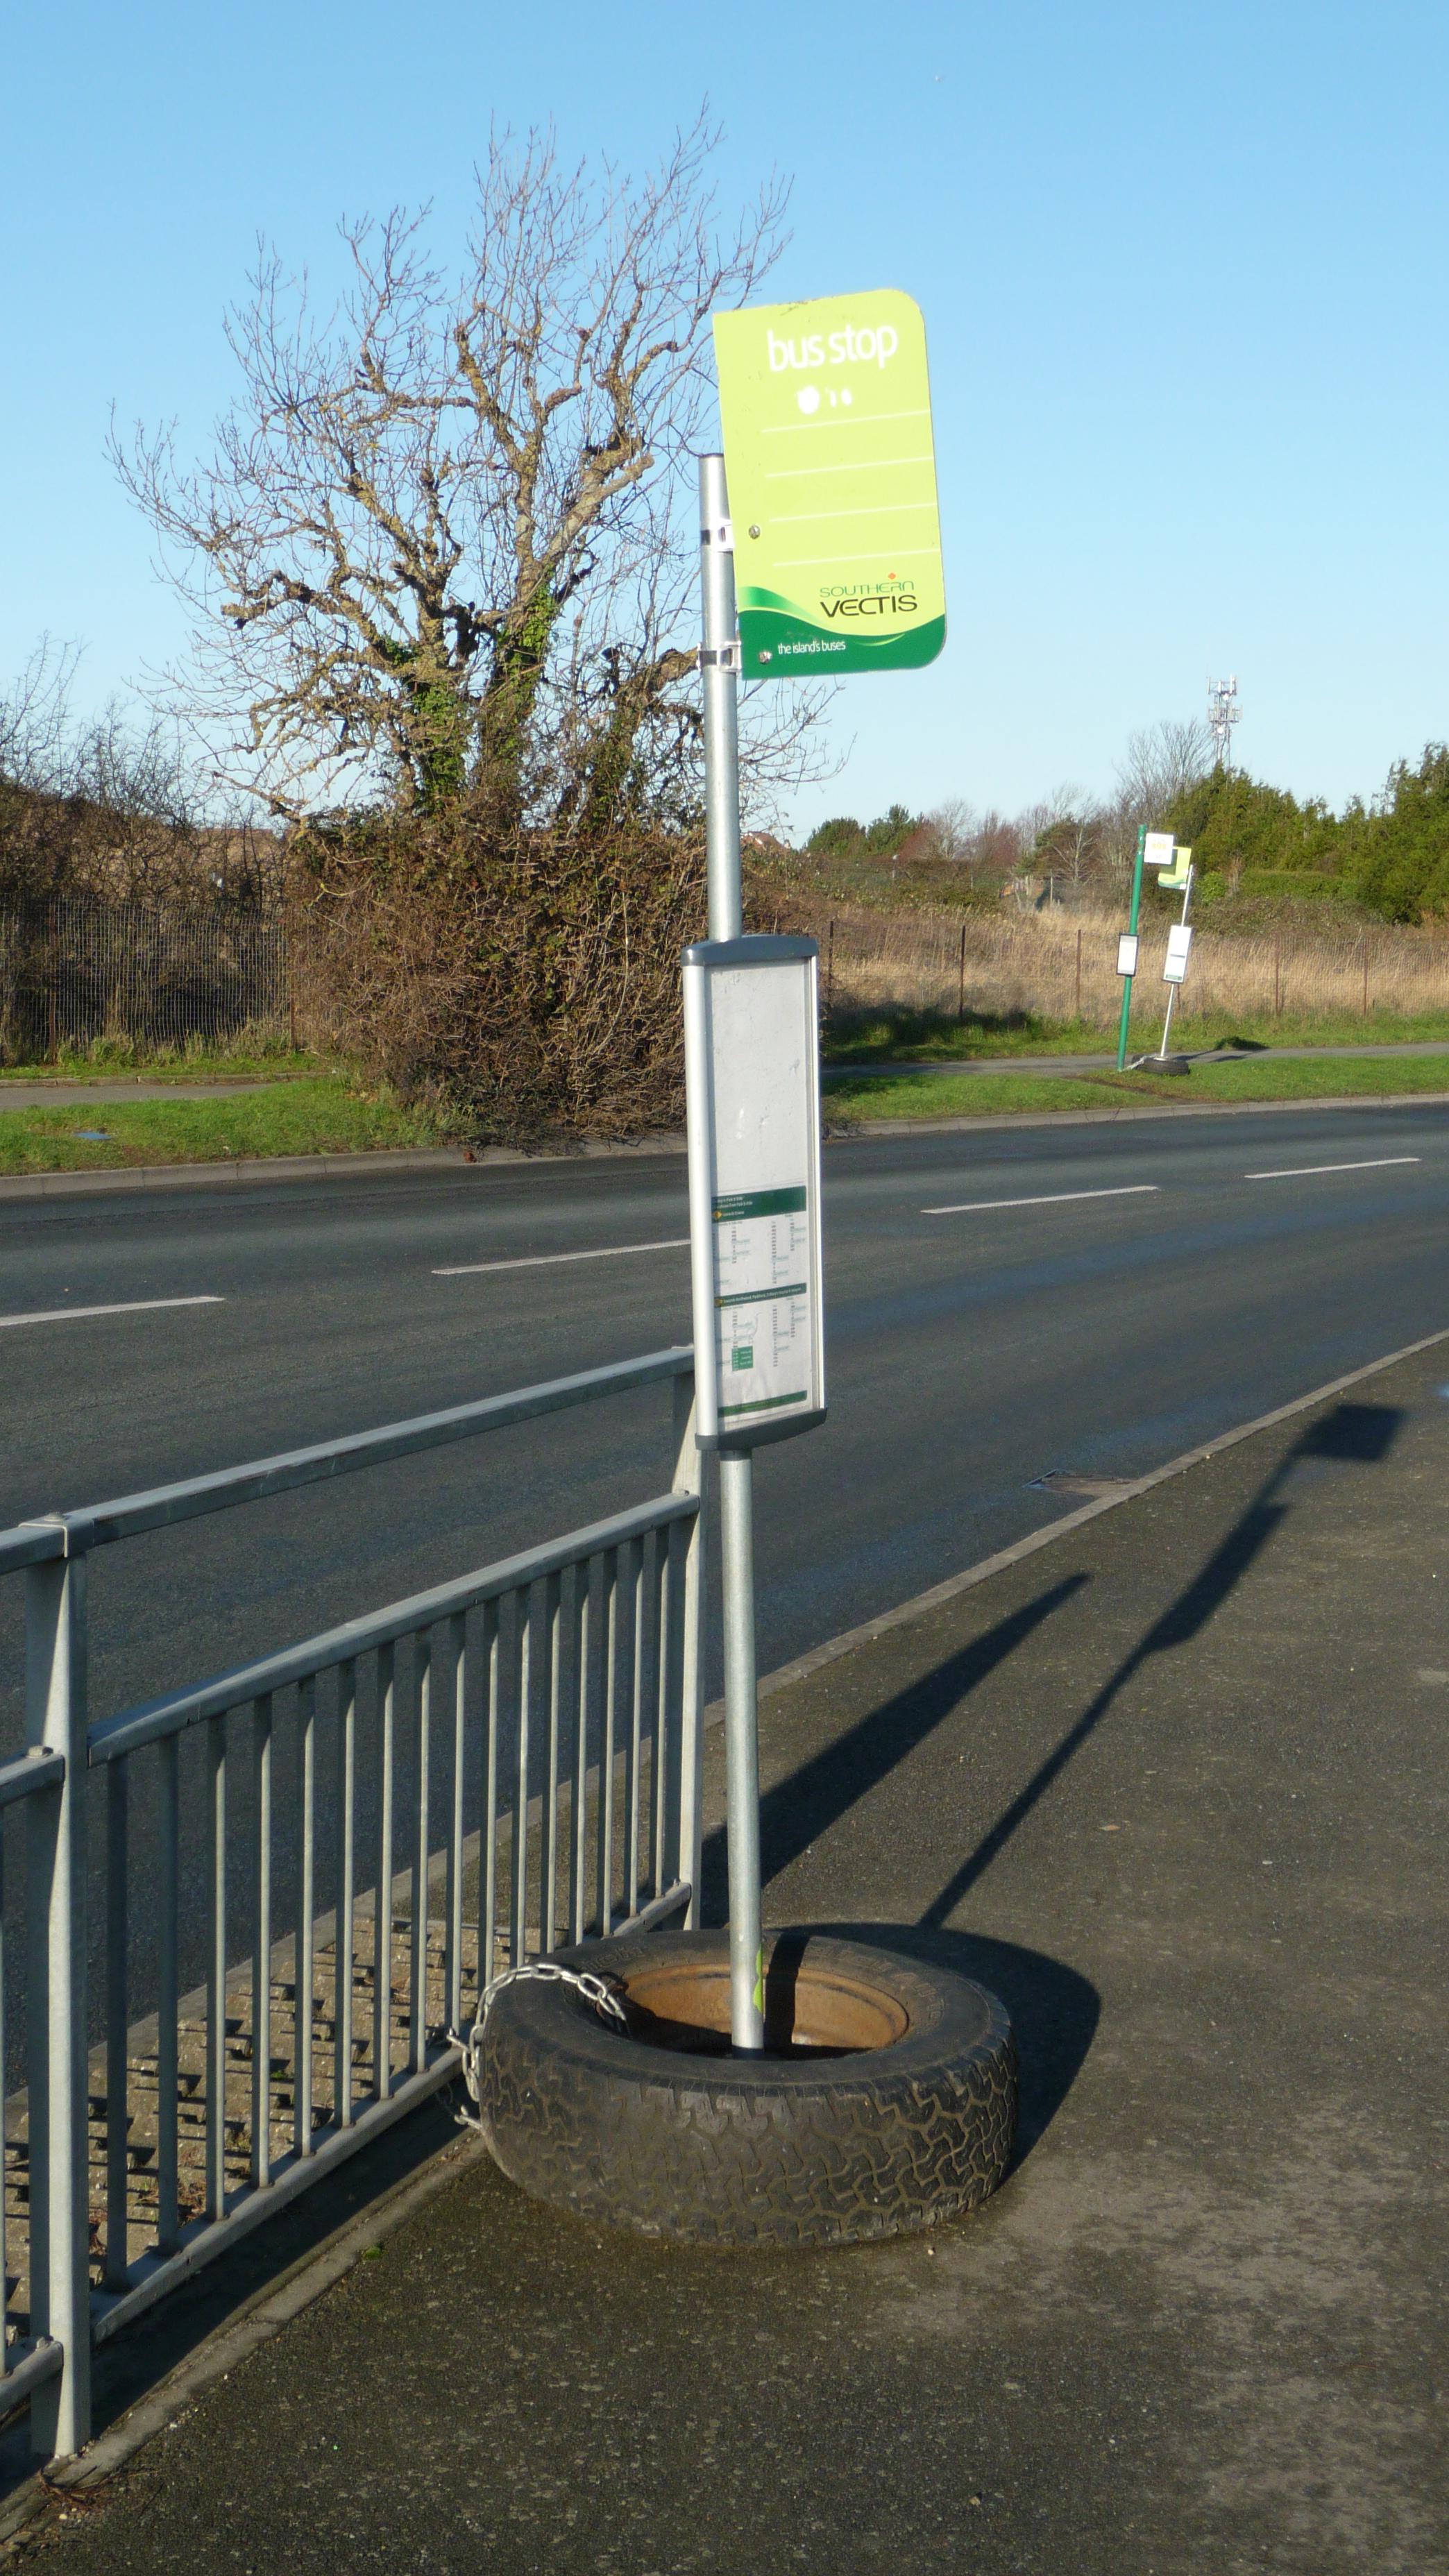 Cowes Somerton park and ride temporary bus stop during remodeling works.JPG